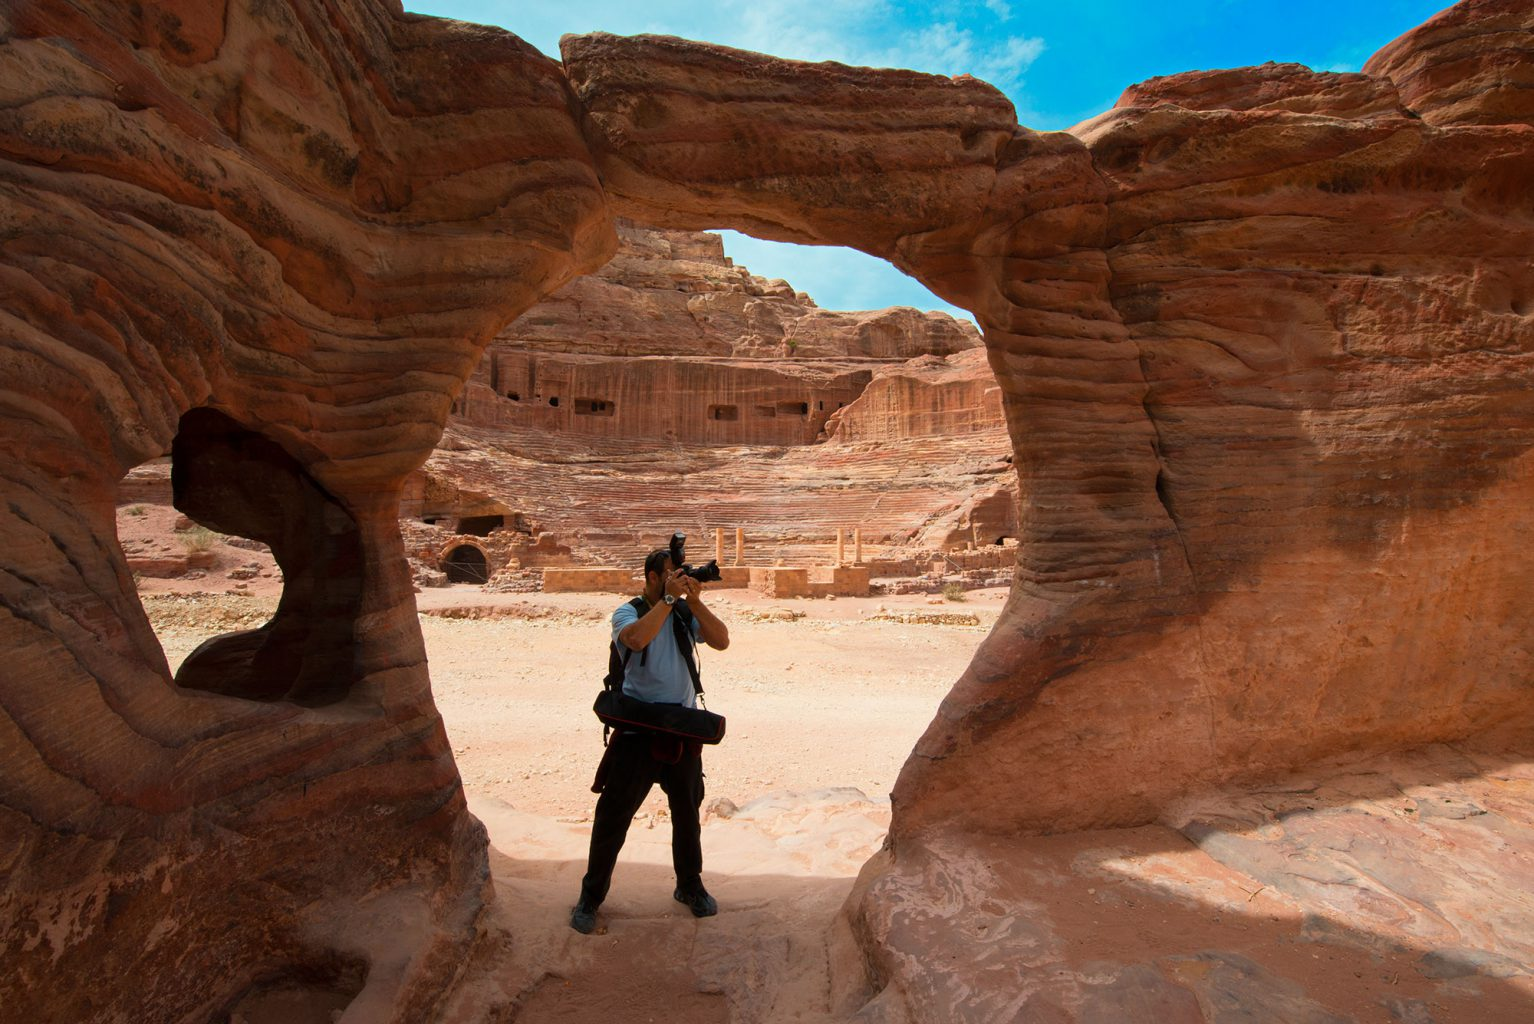 Ancient Nabatean City of Petra, Jordan - Jordanien